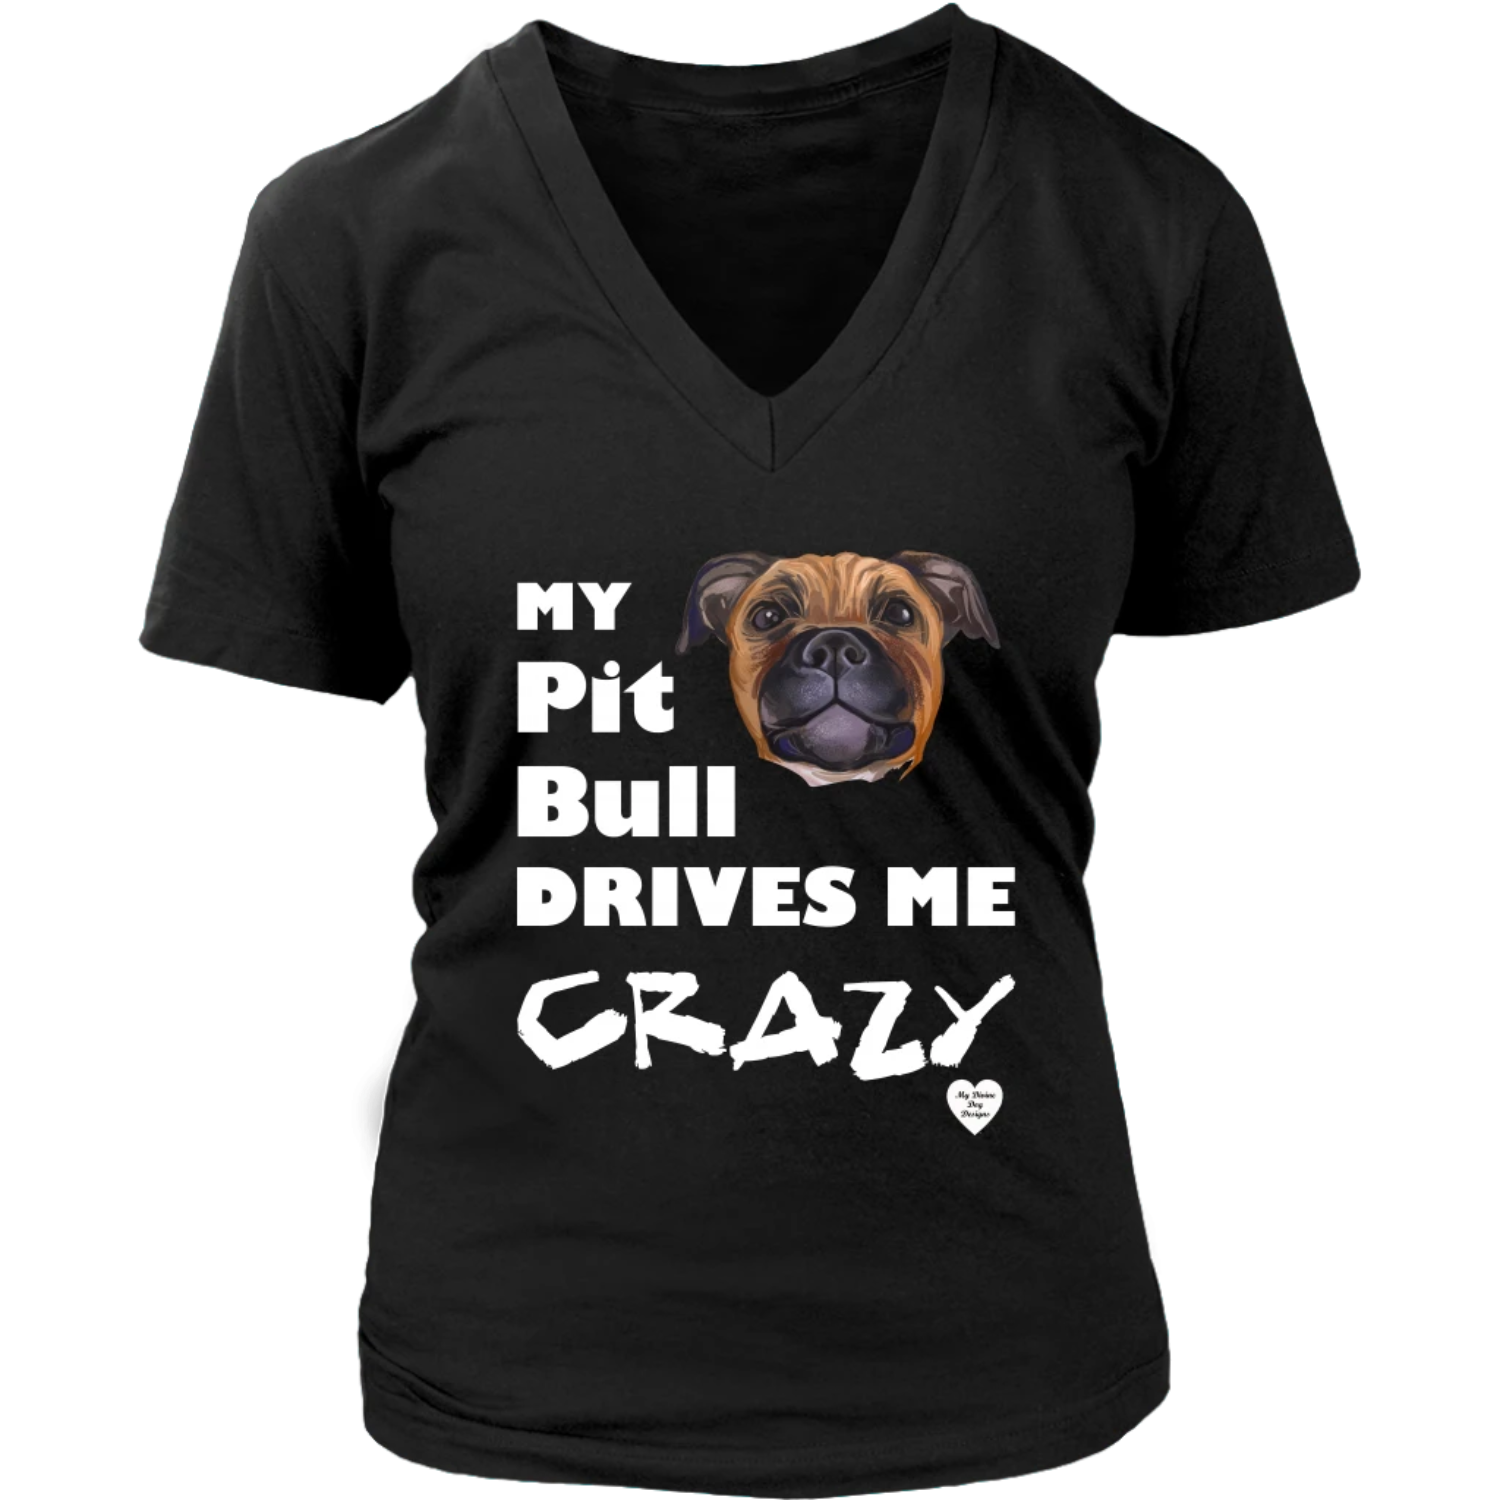 My Pit Bull Tan Drives Me Crazy V-Neck Black